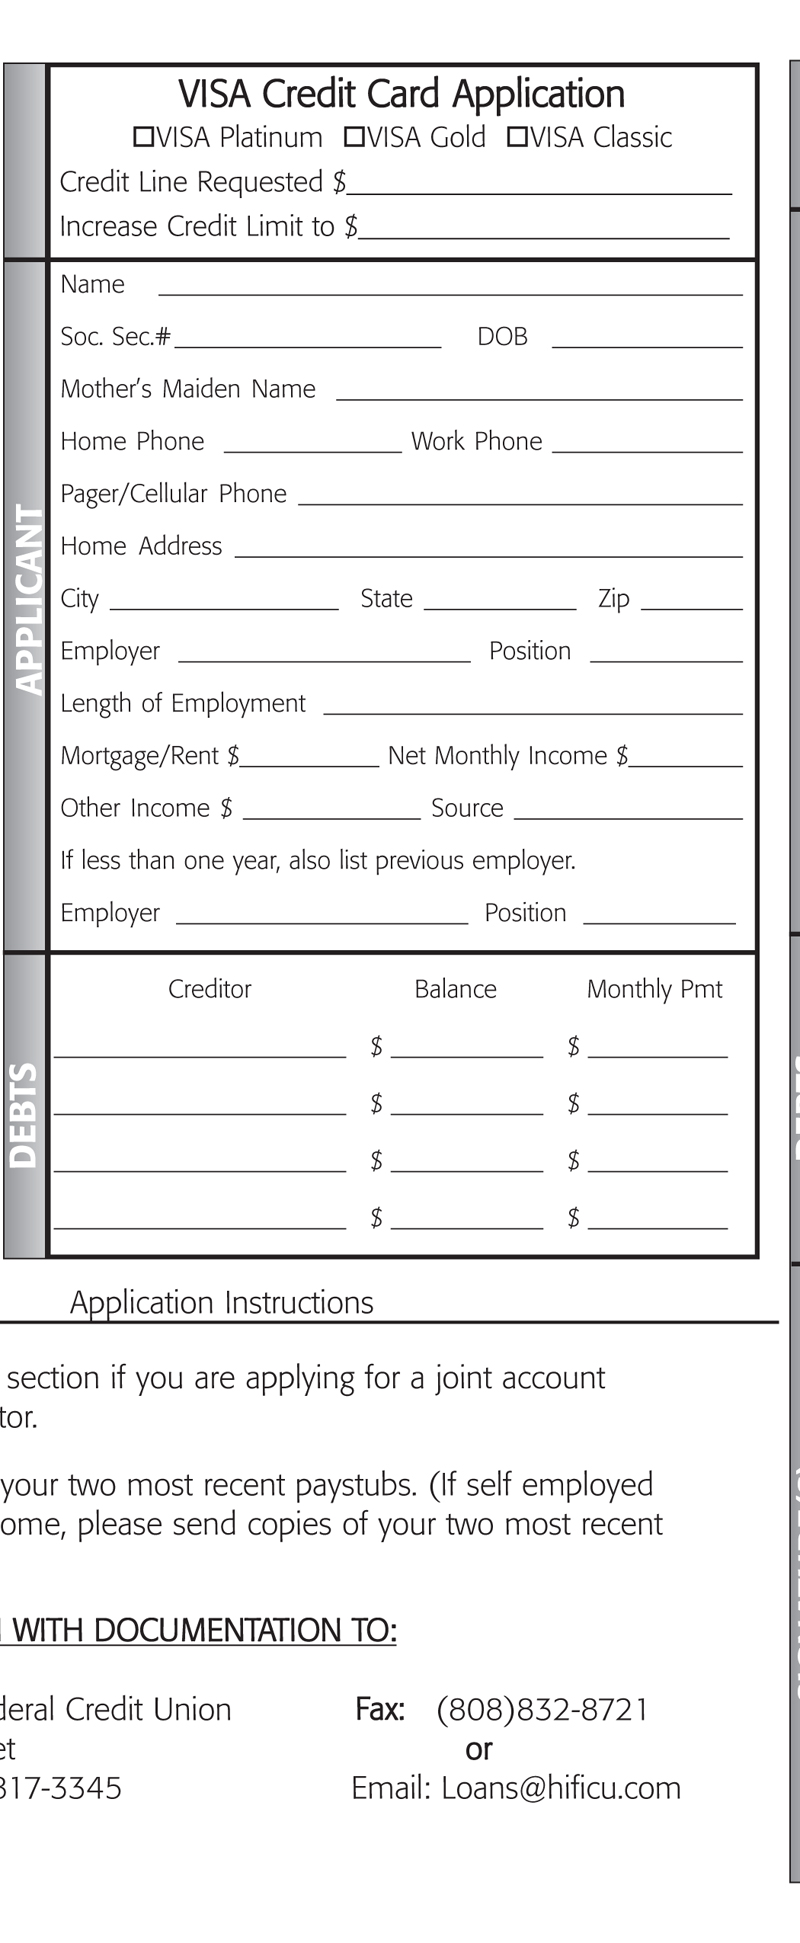 VISA Application Brochure Page 4